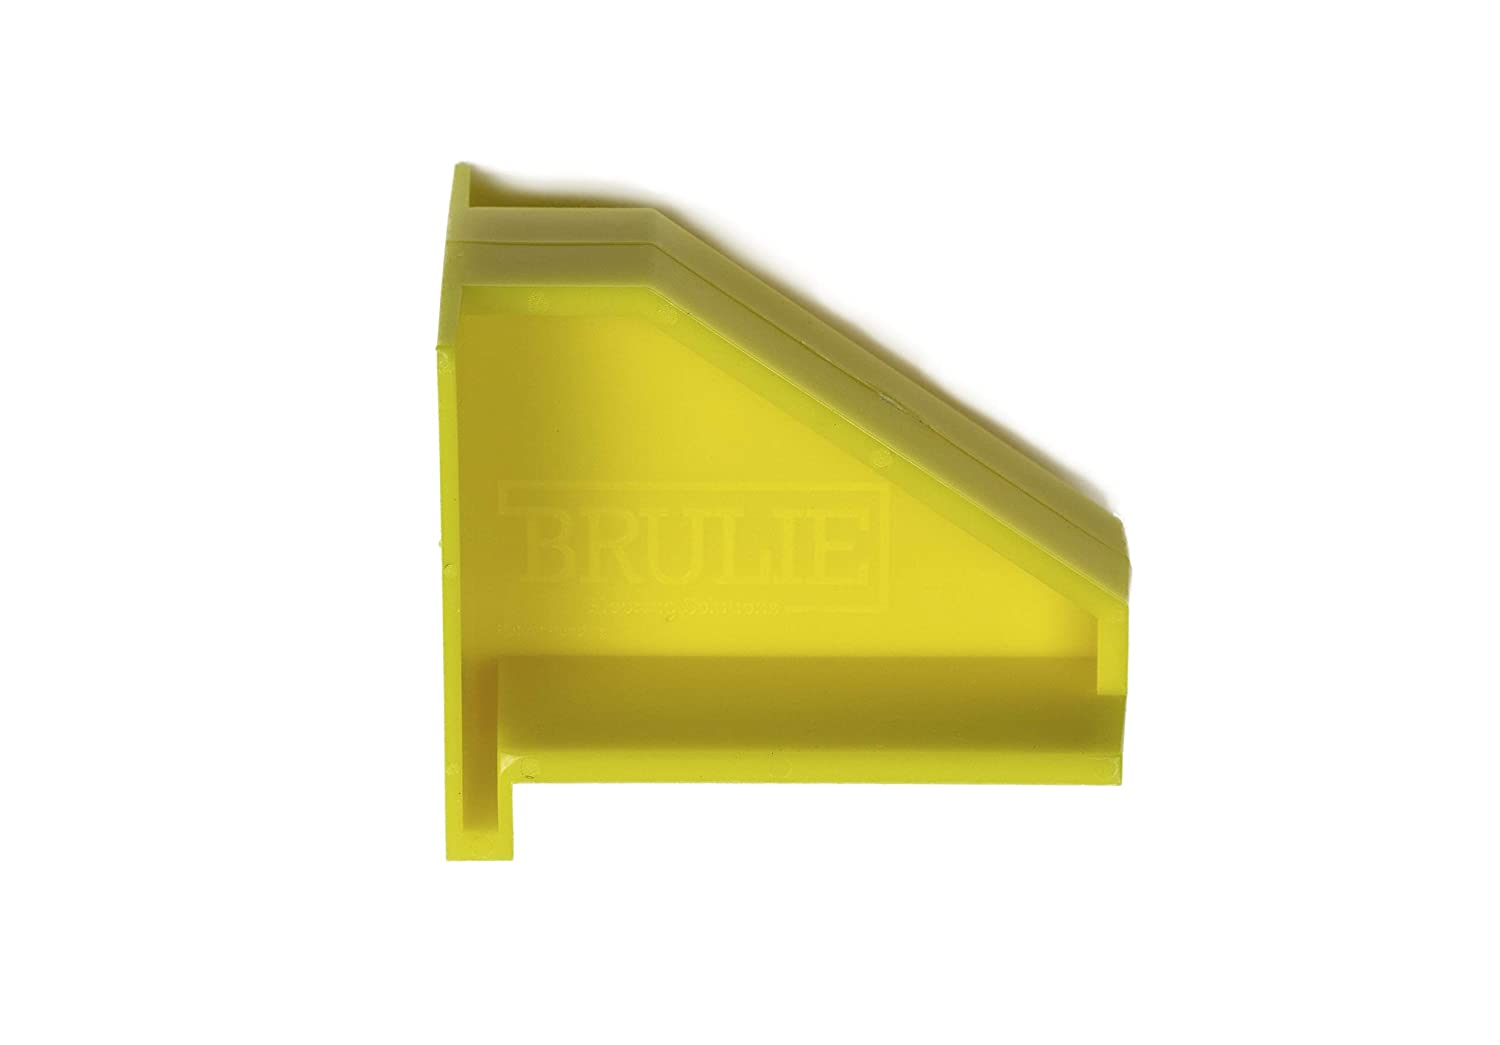 Flooring Spacer for Laminate Vinyl Plank and Hardwood Floors   Great for Professional and DIY Floating Floor Installation   Brulie Flooring Spacers The Perfect Addition to Your Floor Installation Kit